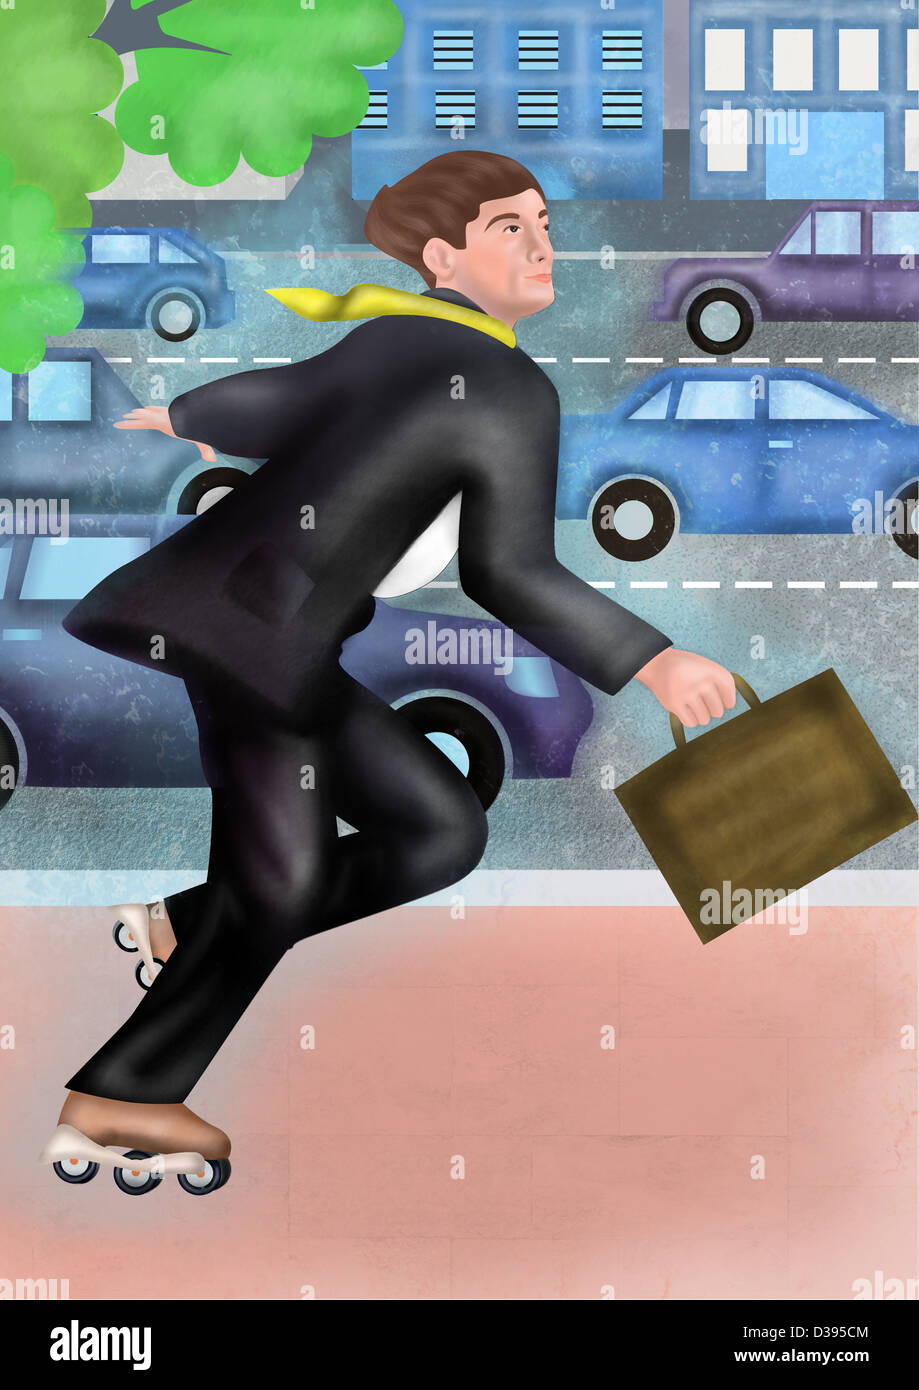 Illustration of businessman in a rush getting late for office - Stock Image